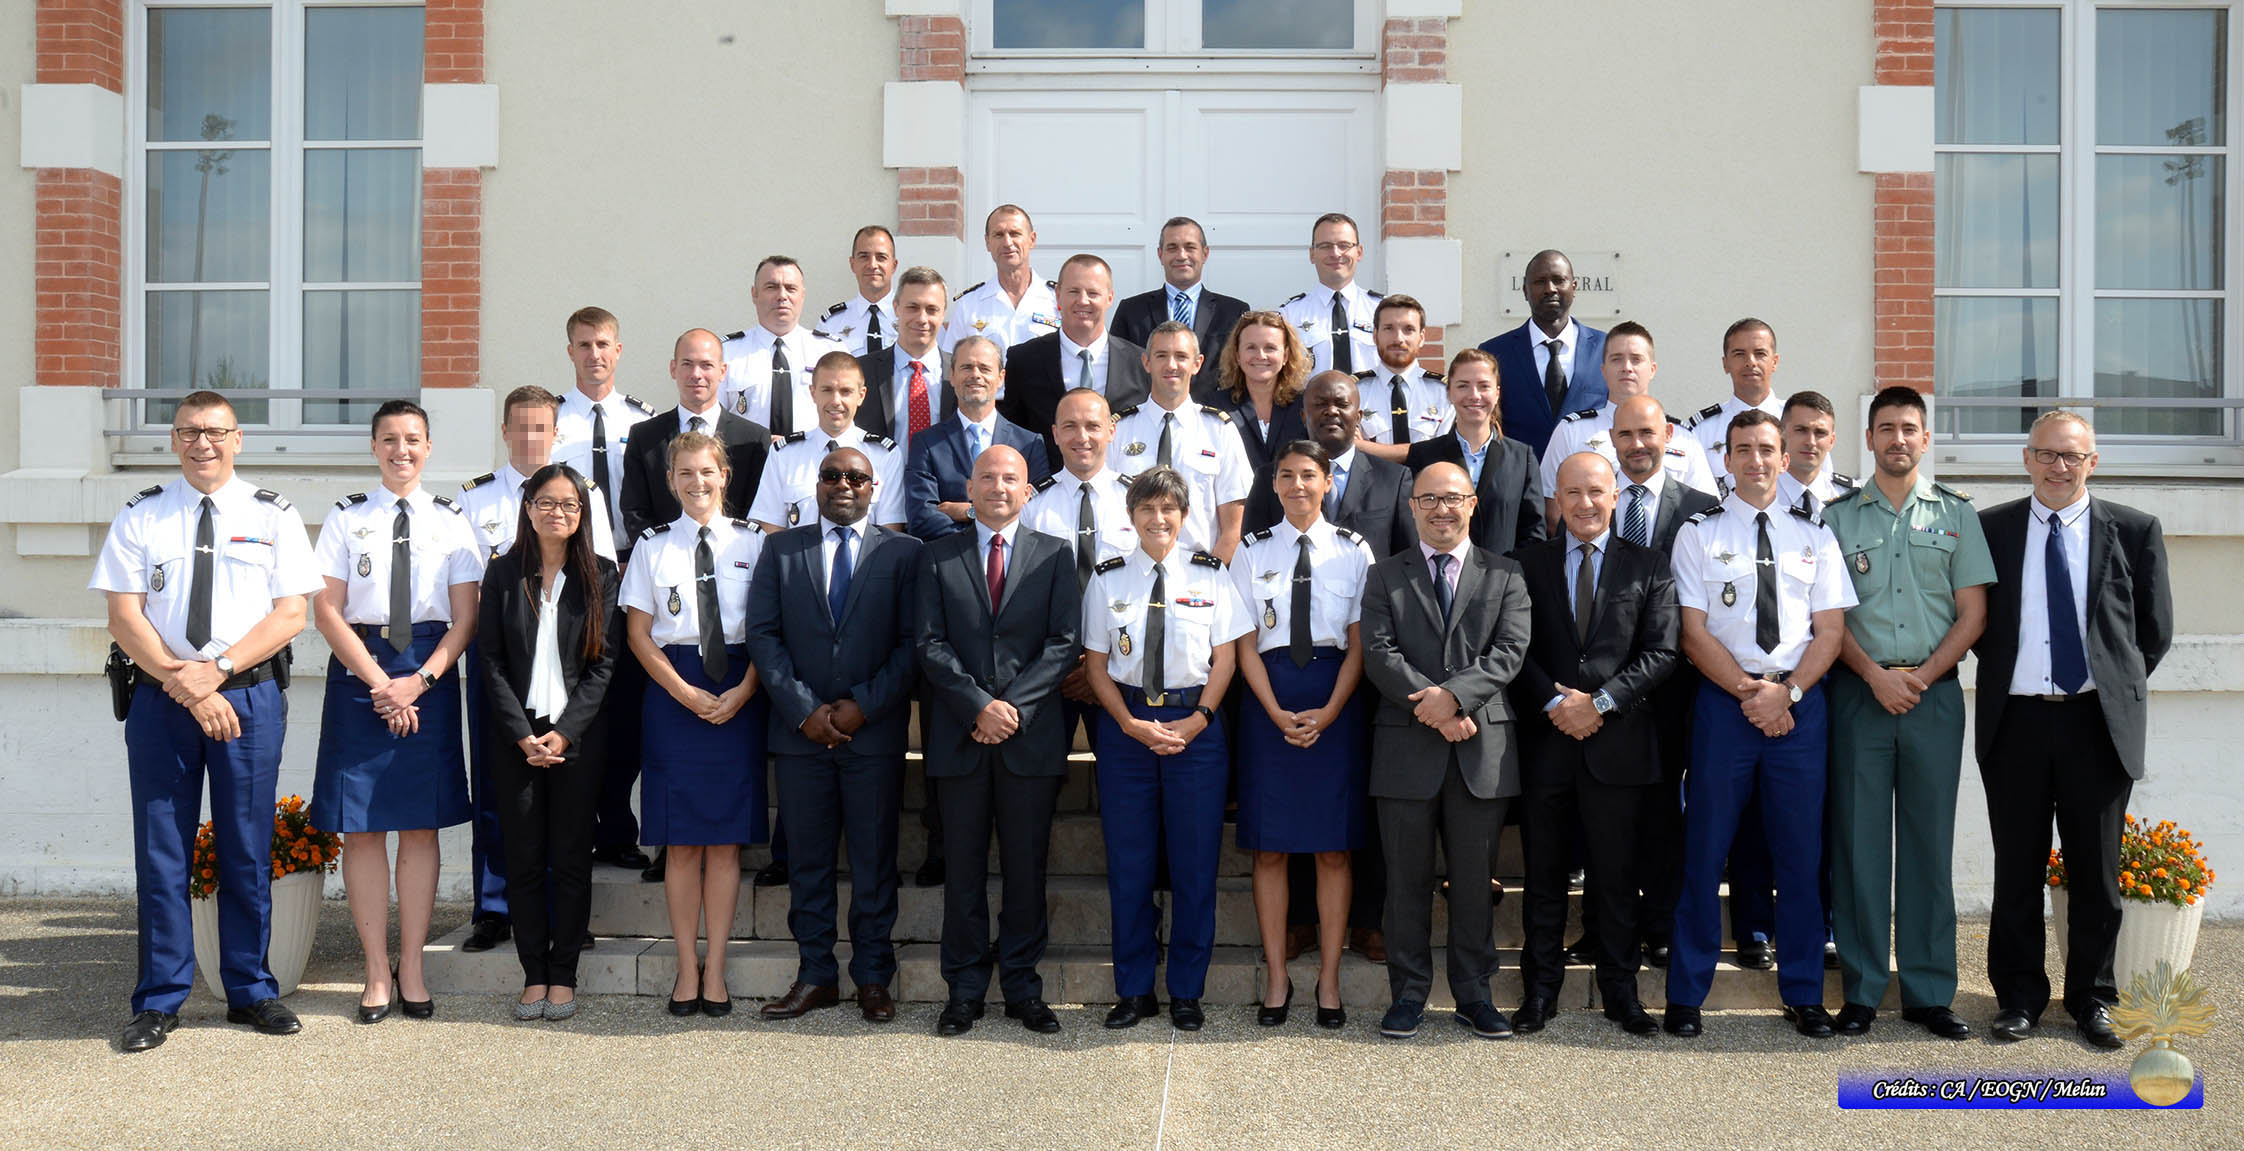 School-Year-French-Gendarmerie-Officers-Academy-security-management